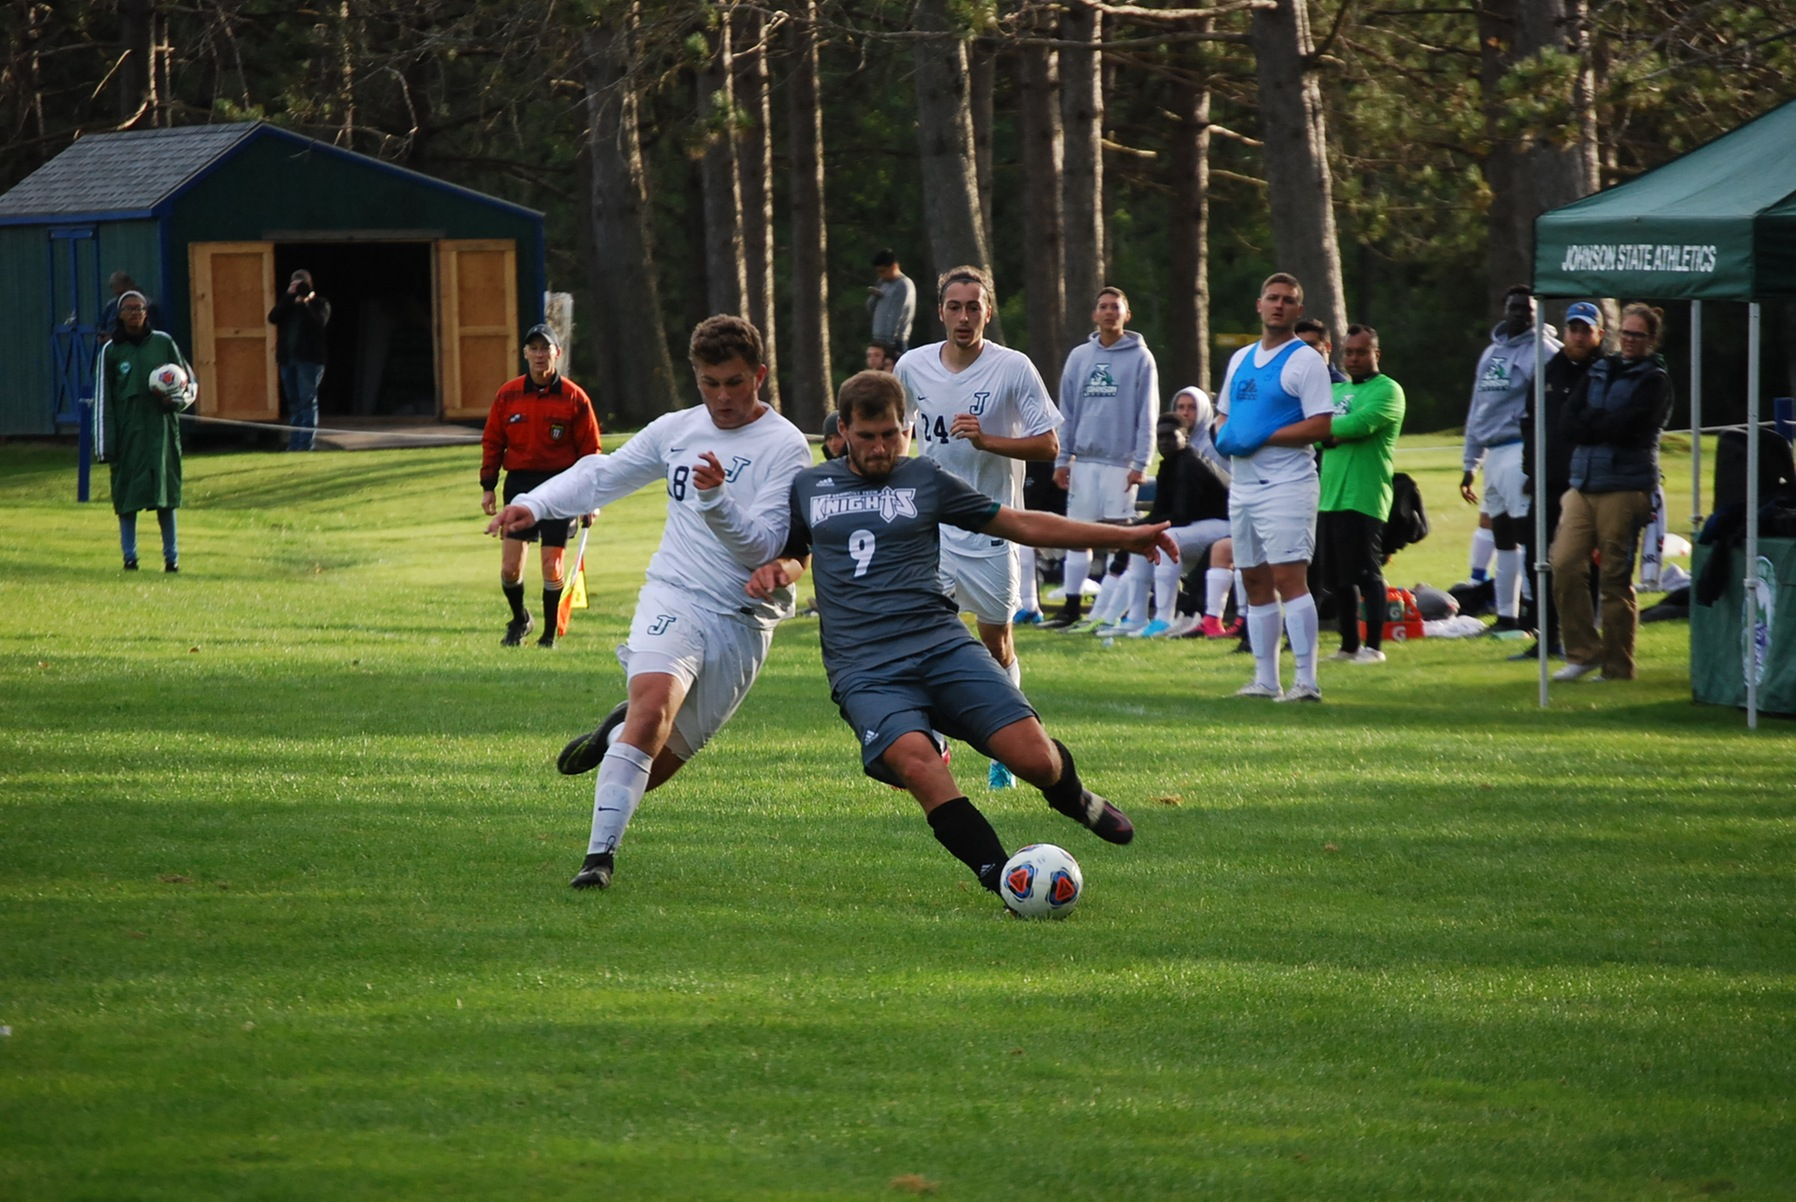 Men's Soccer falls in Home Conference Opener